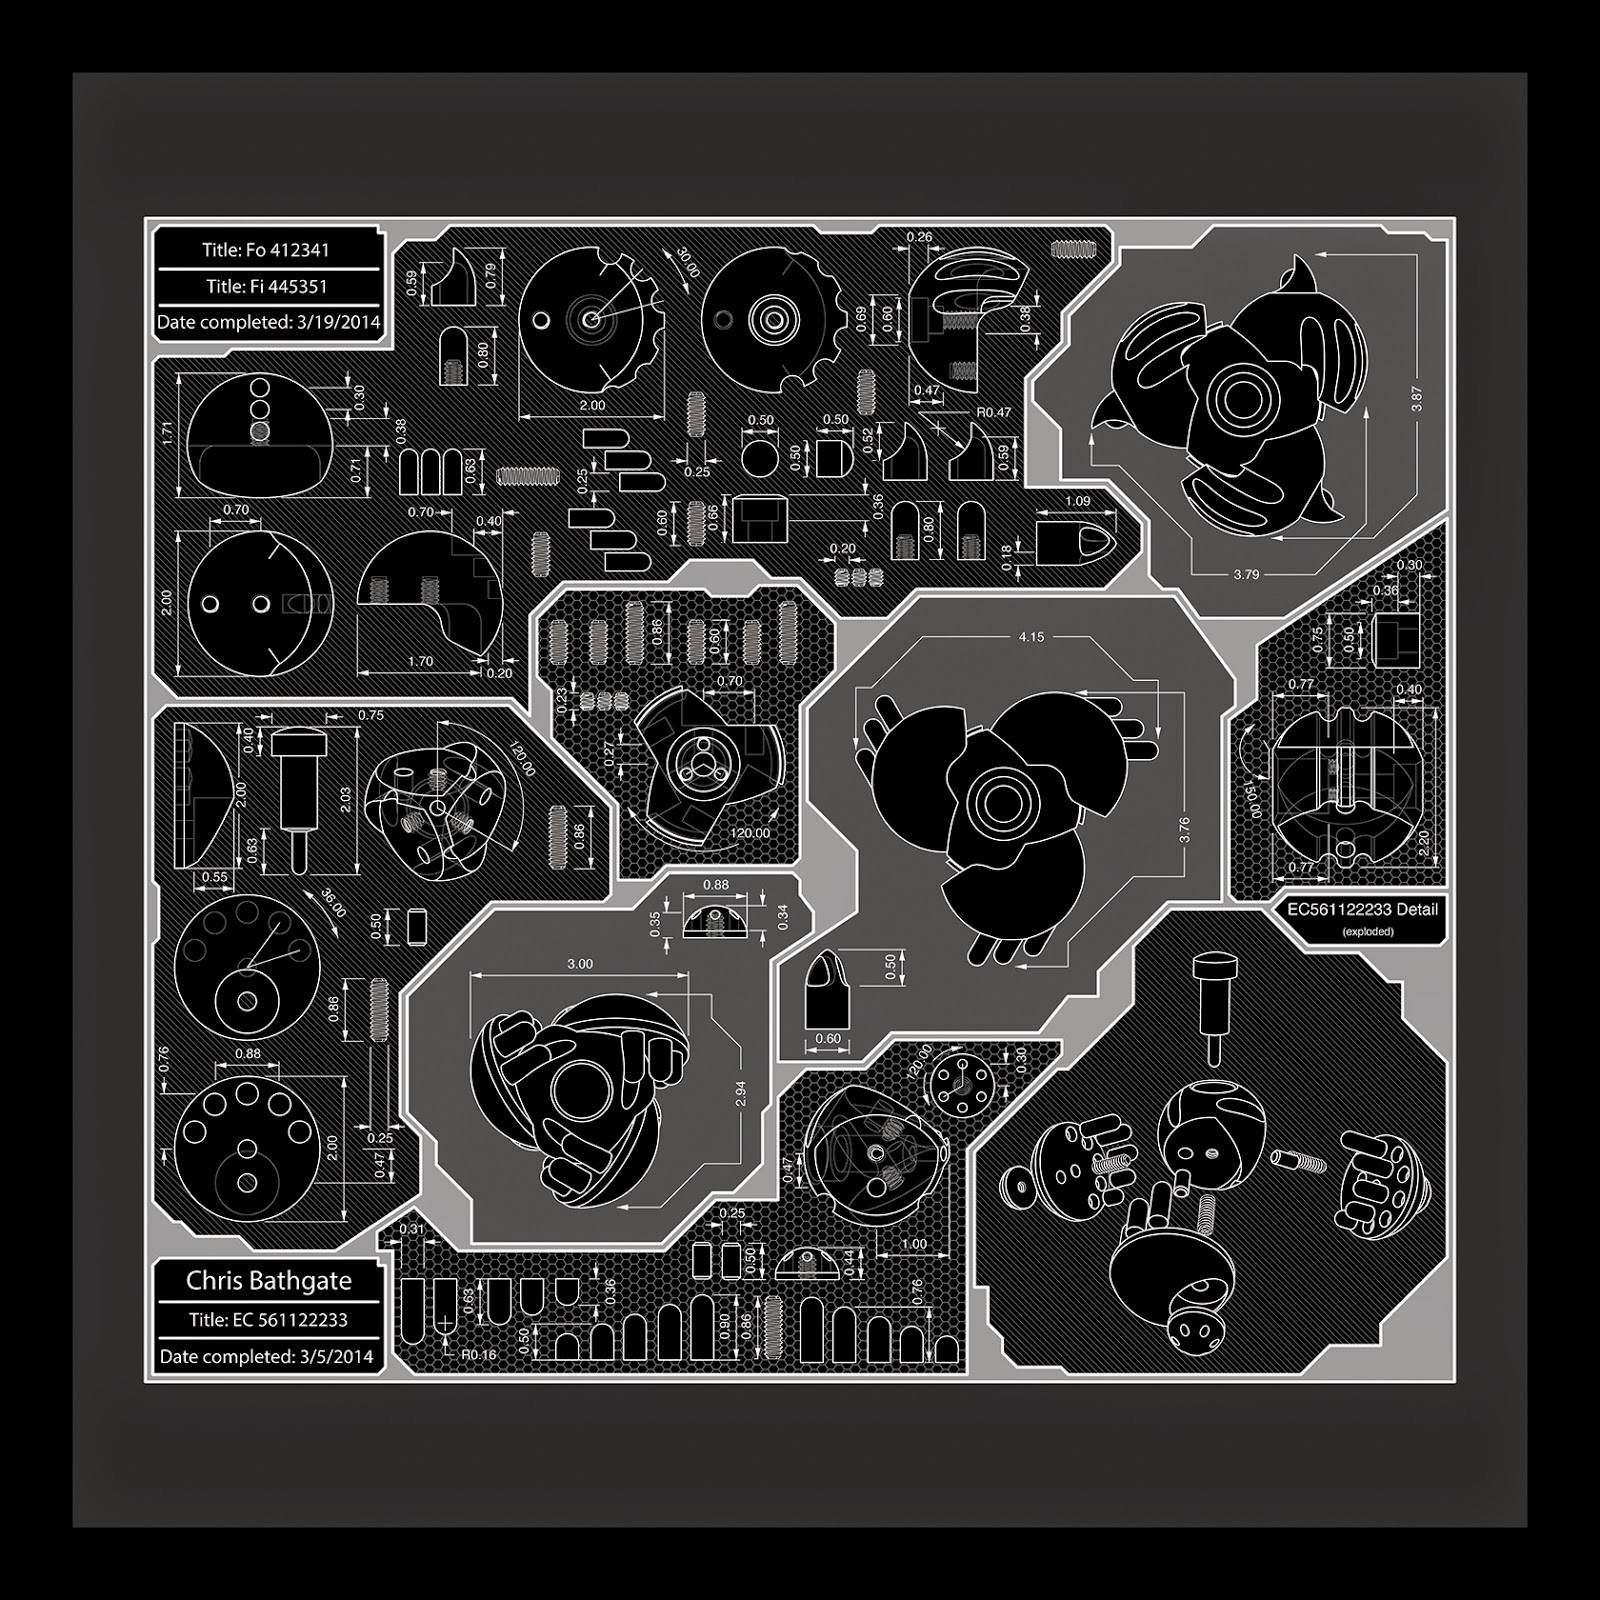 Blueprint, Schematic, CNC Art, CAD Art, CAD/CAM, industrial design